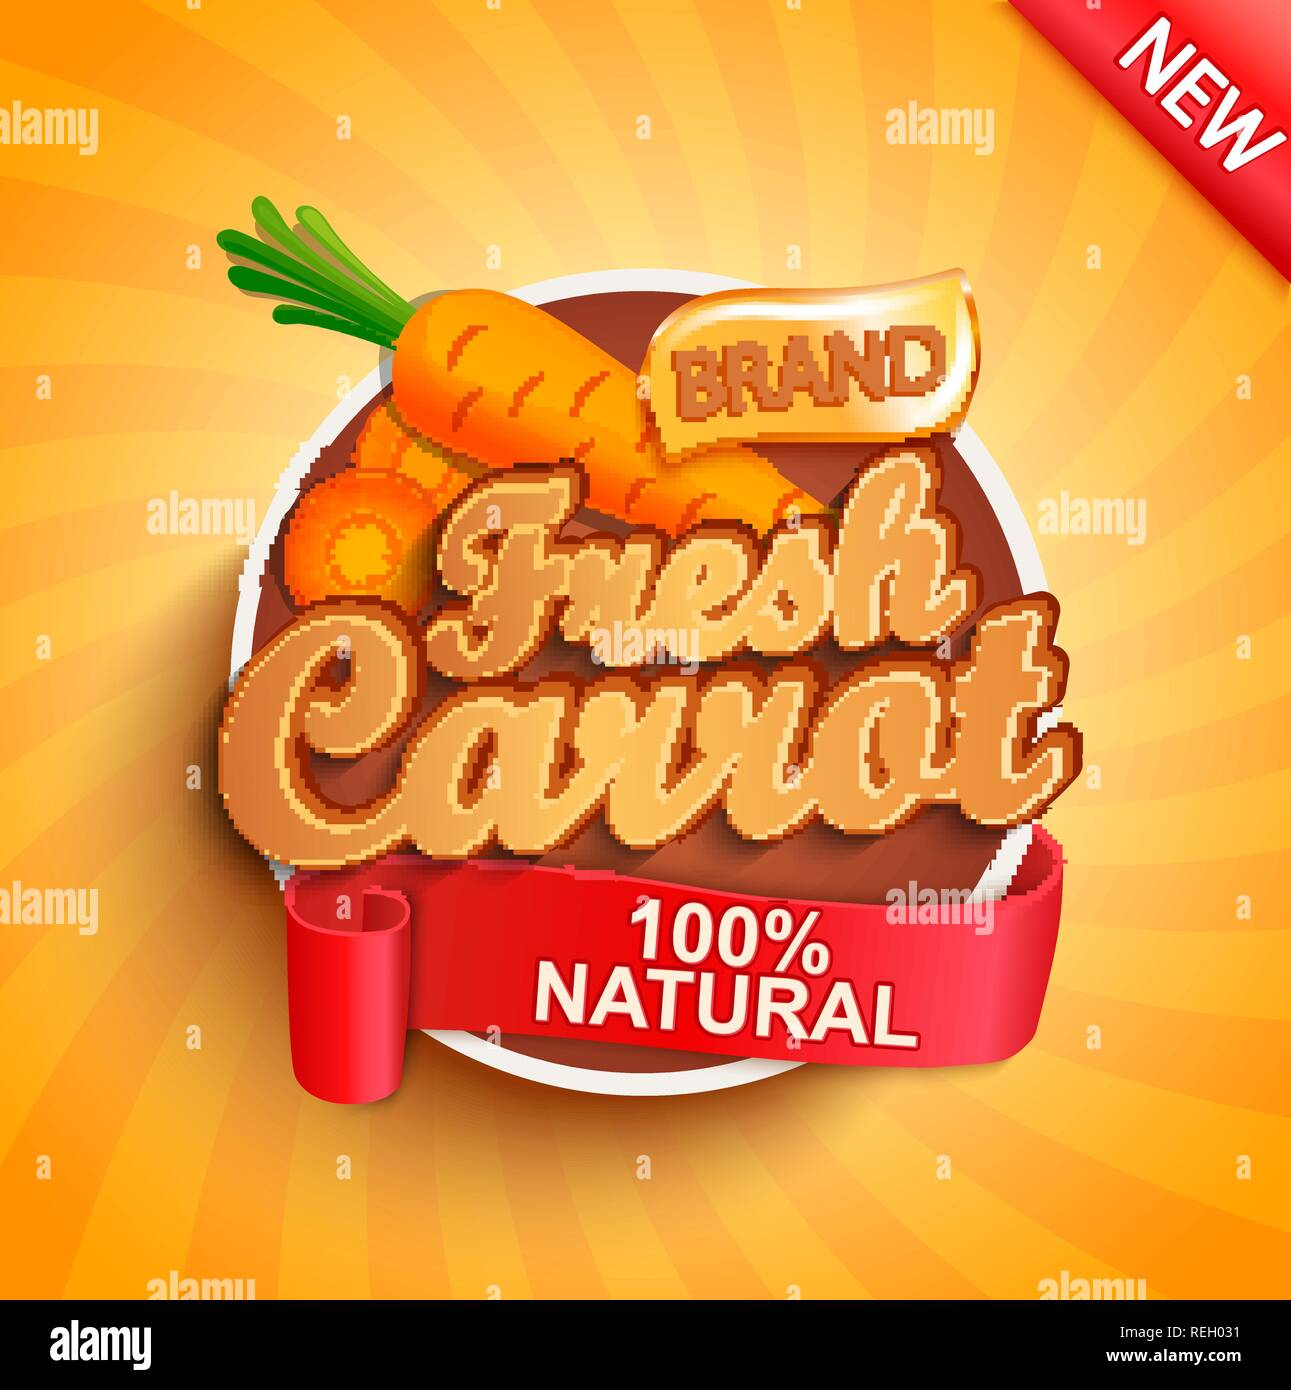 Fresh carrot logo, label or sticker on sunburst background  Natural